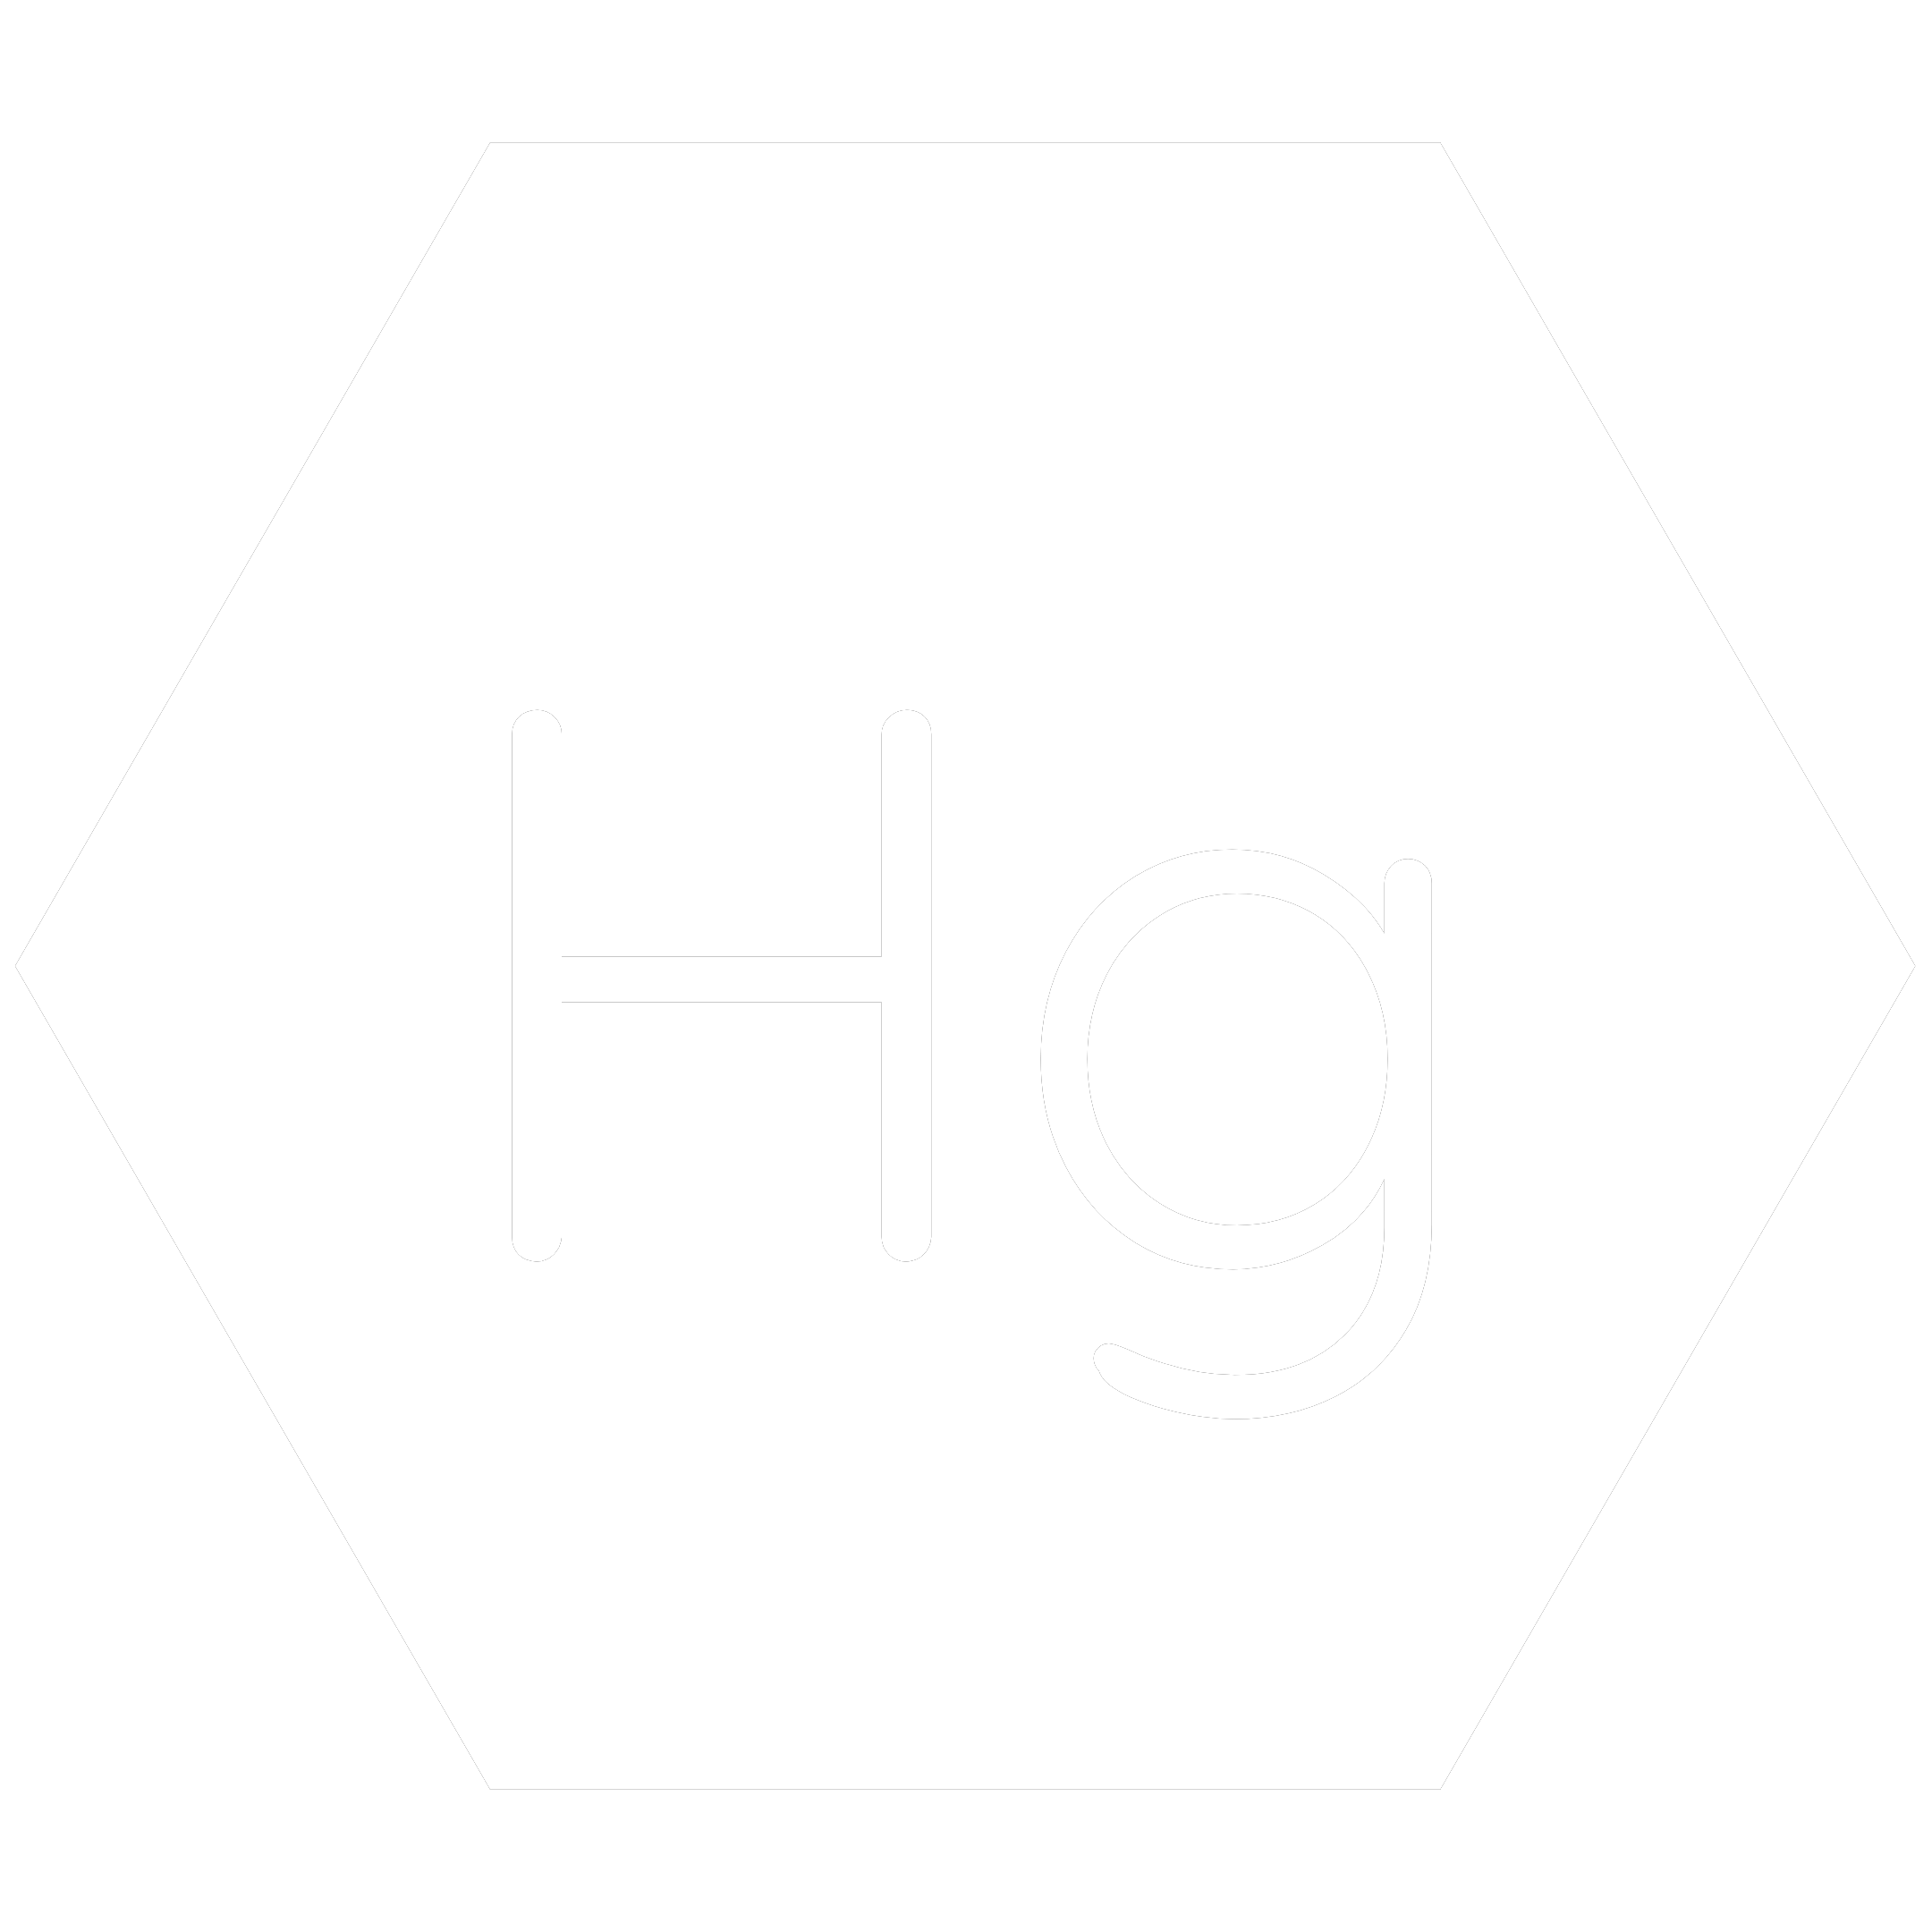 White hexagon icon with the chemical symbol for Mercury which is a banned RoHS substance.